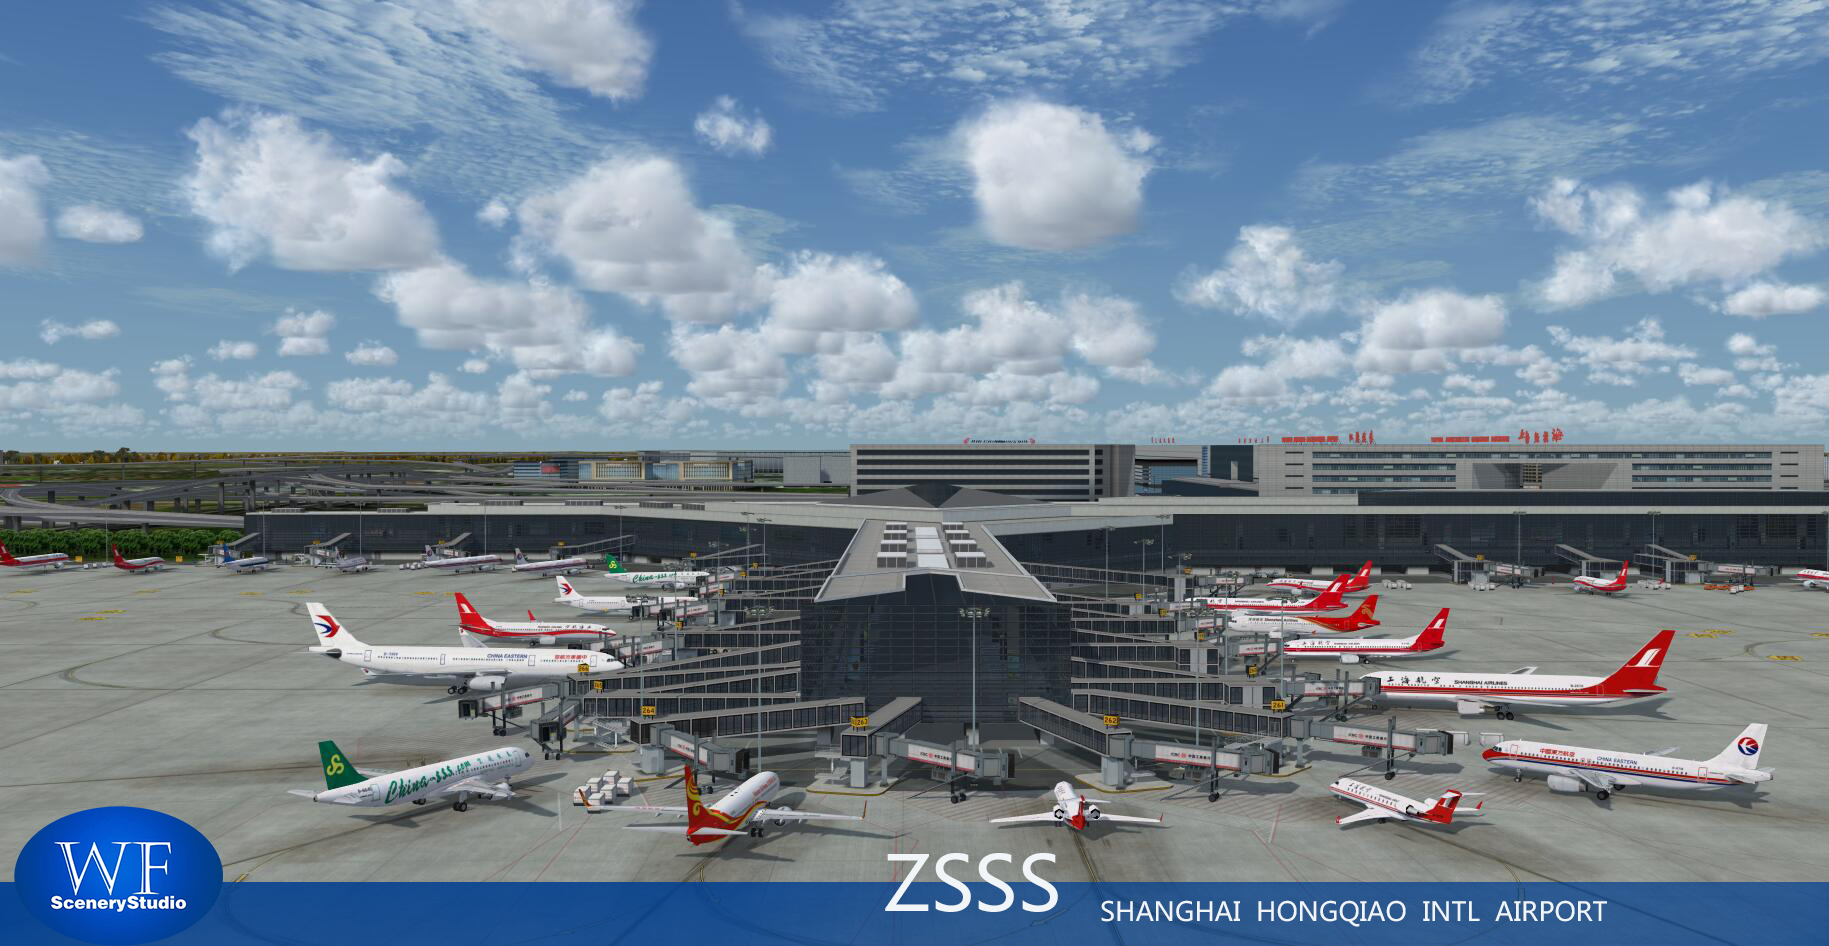 Airport Scenery Flight Sim Software amp Hardware FSX - oukas info